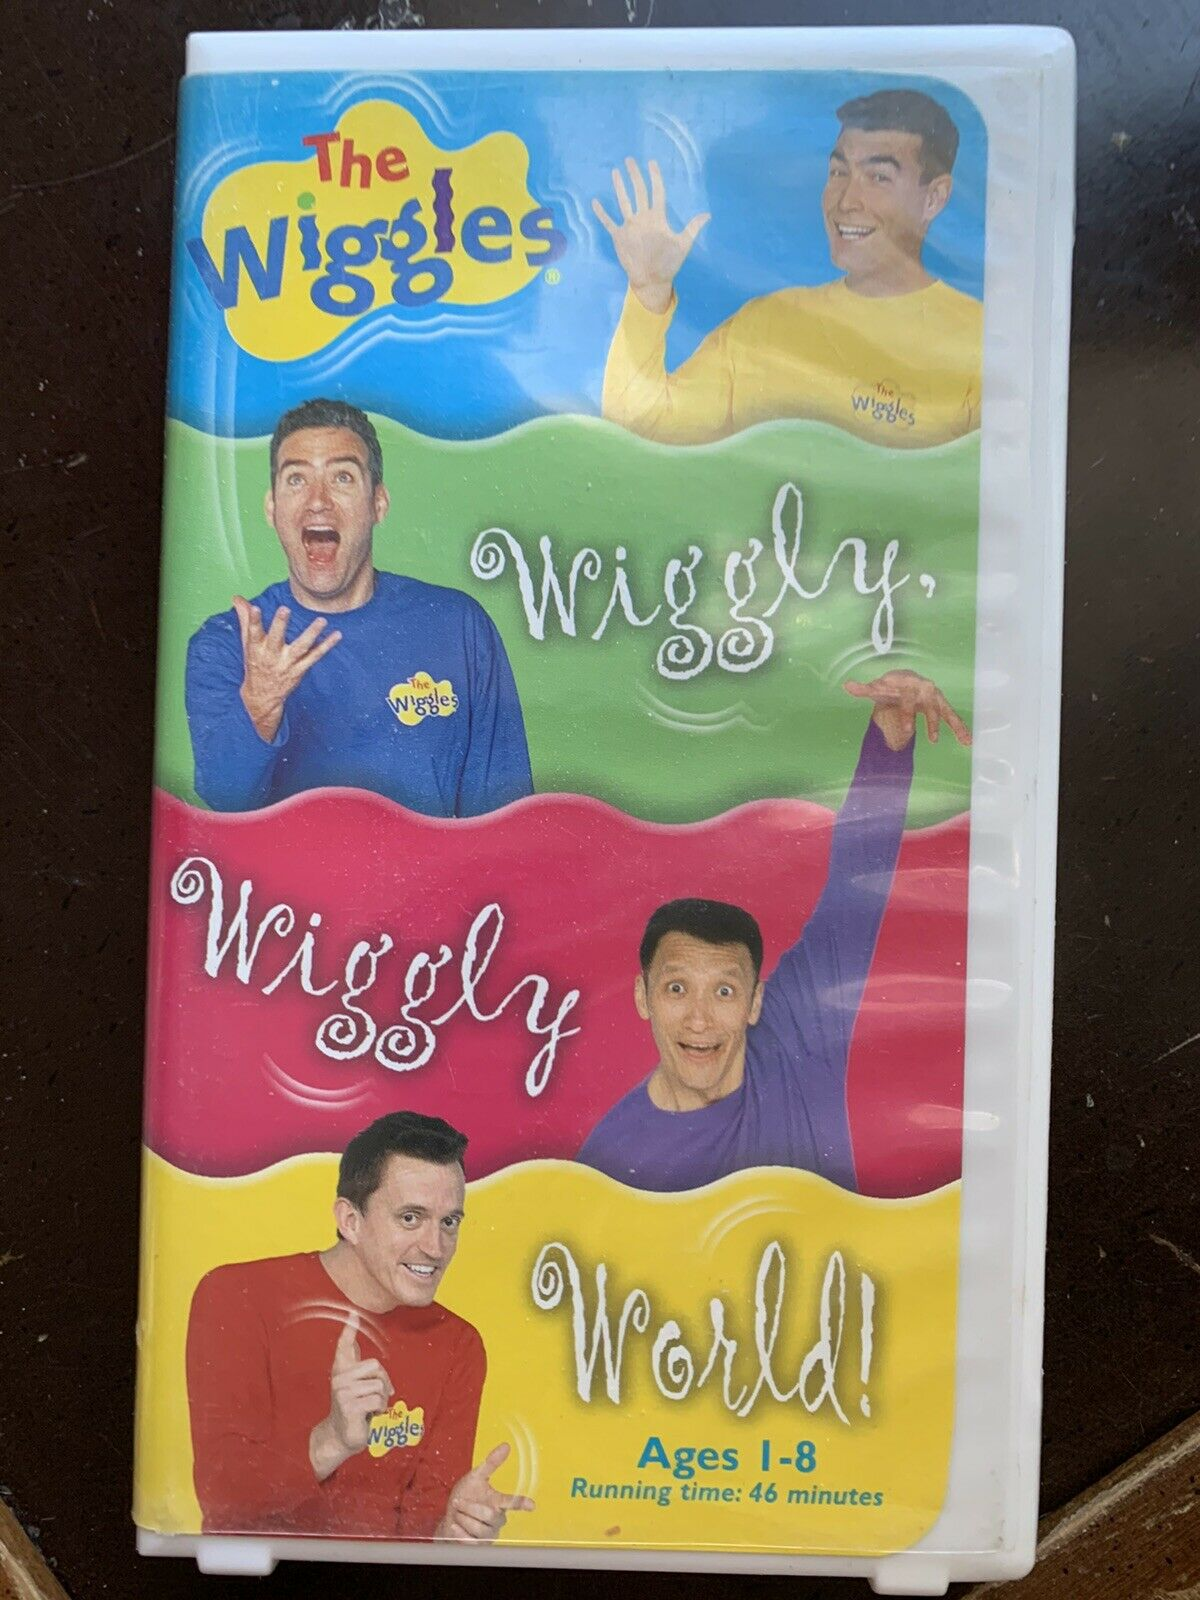 The Wiggles: Wiggly, Wiggly World! (2002 VHS)